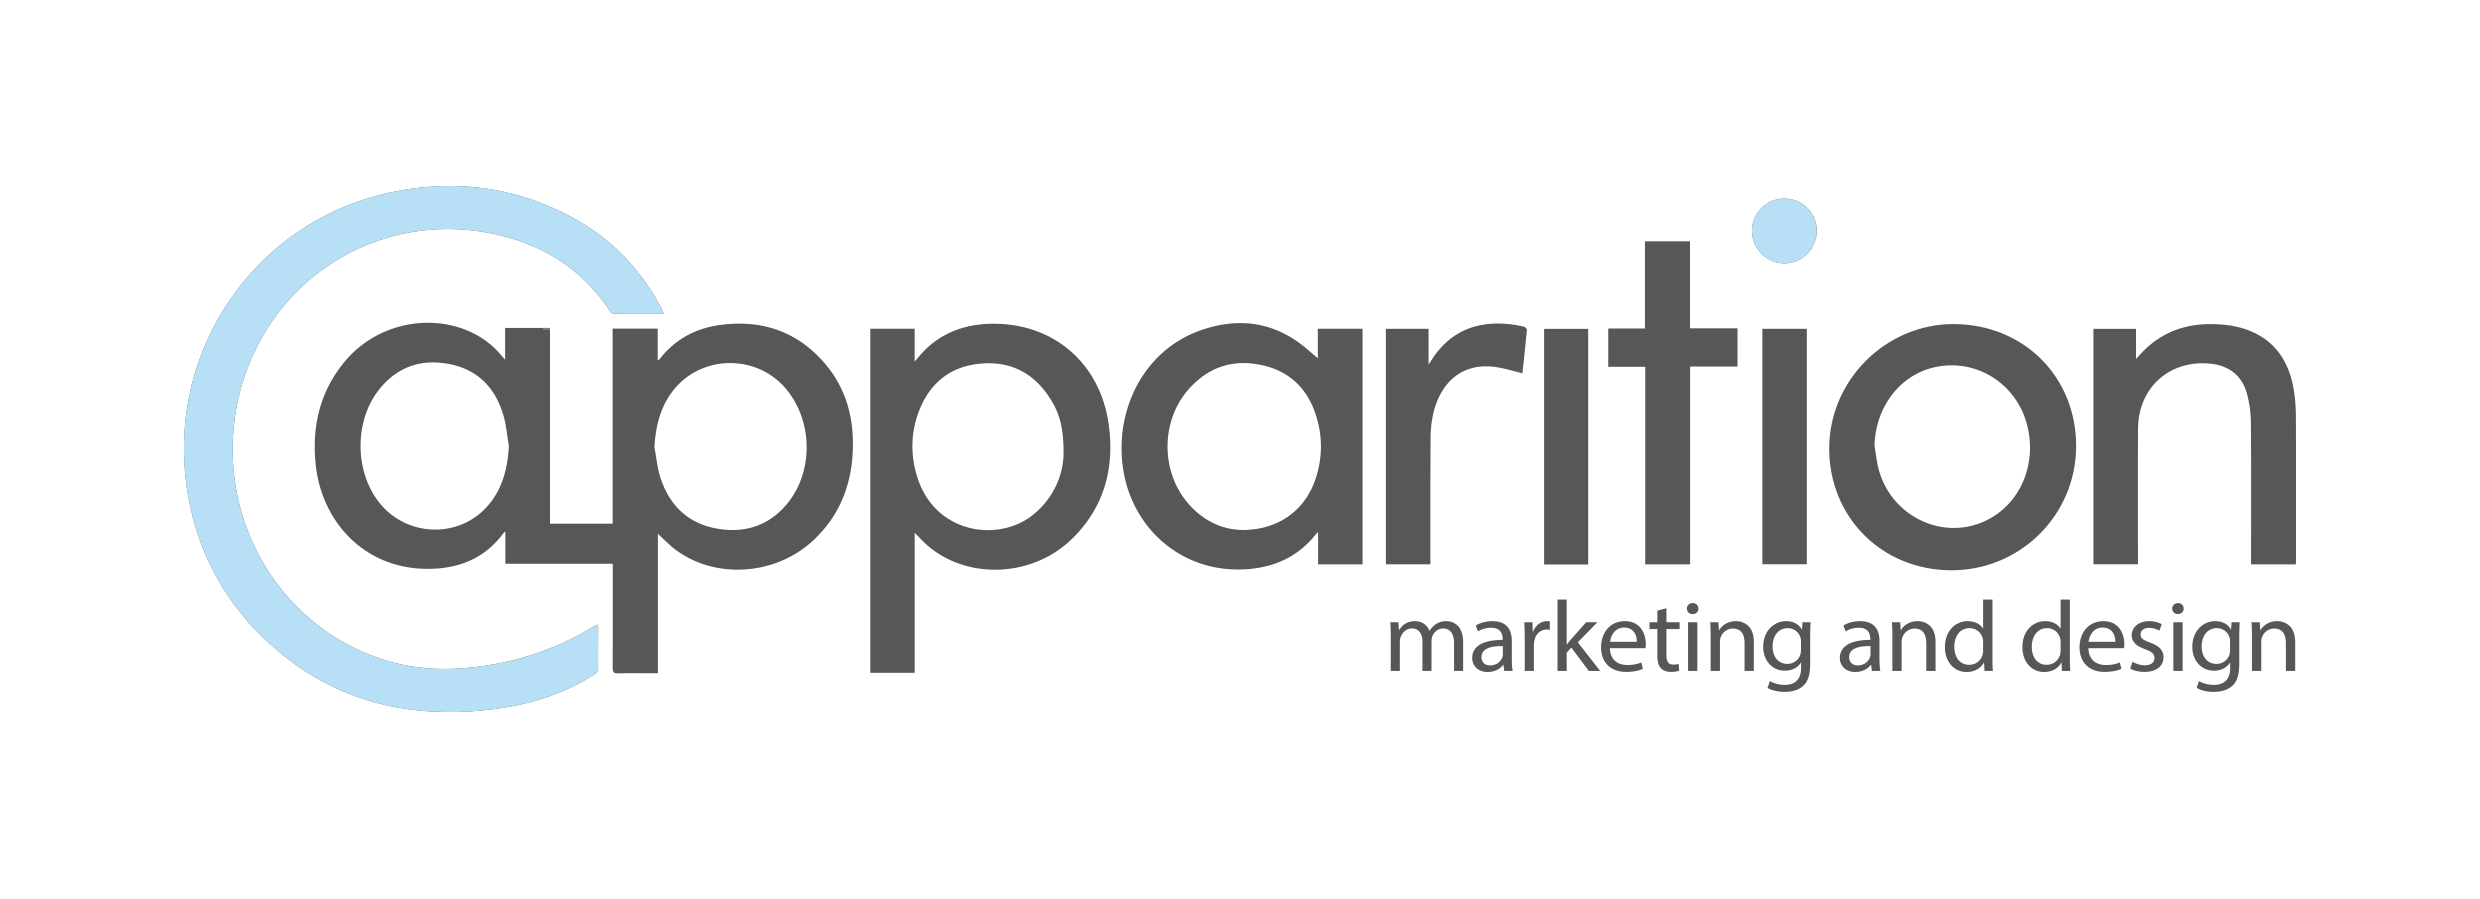 Apparition Marketing & Design